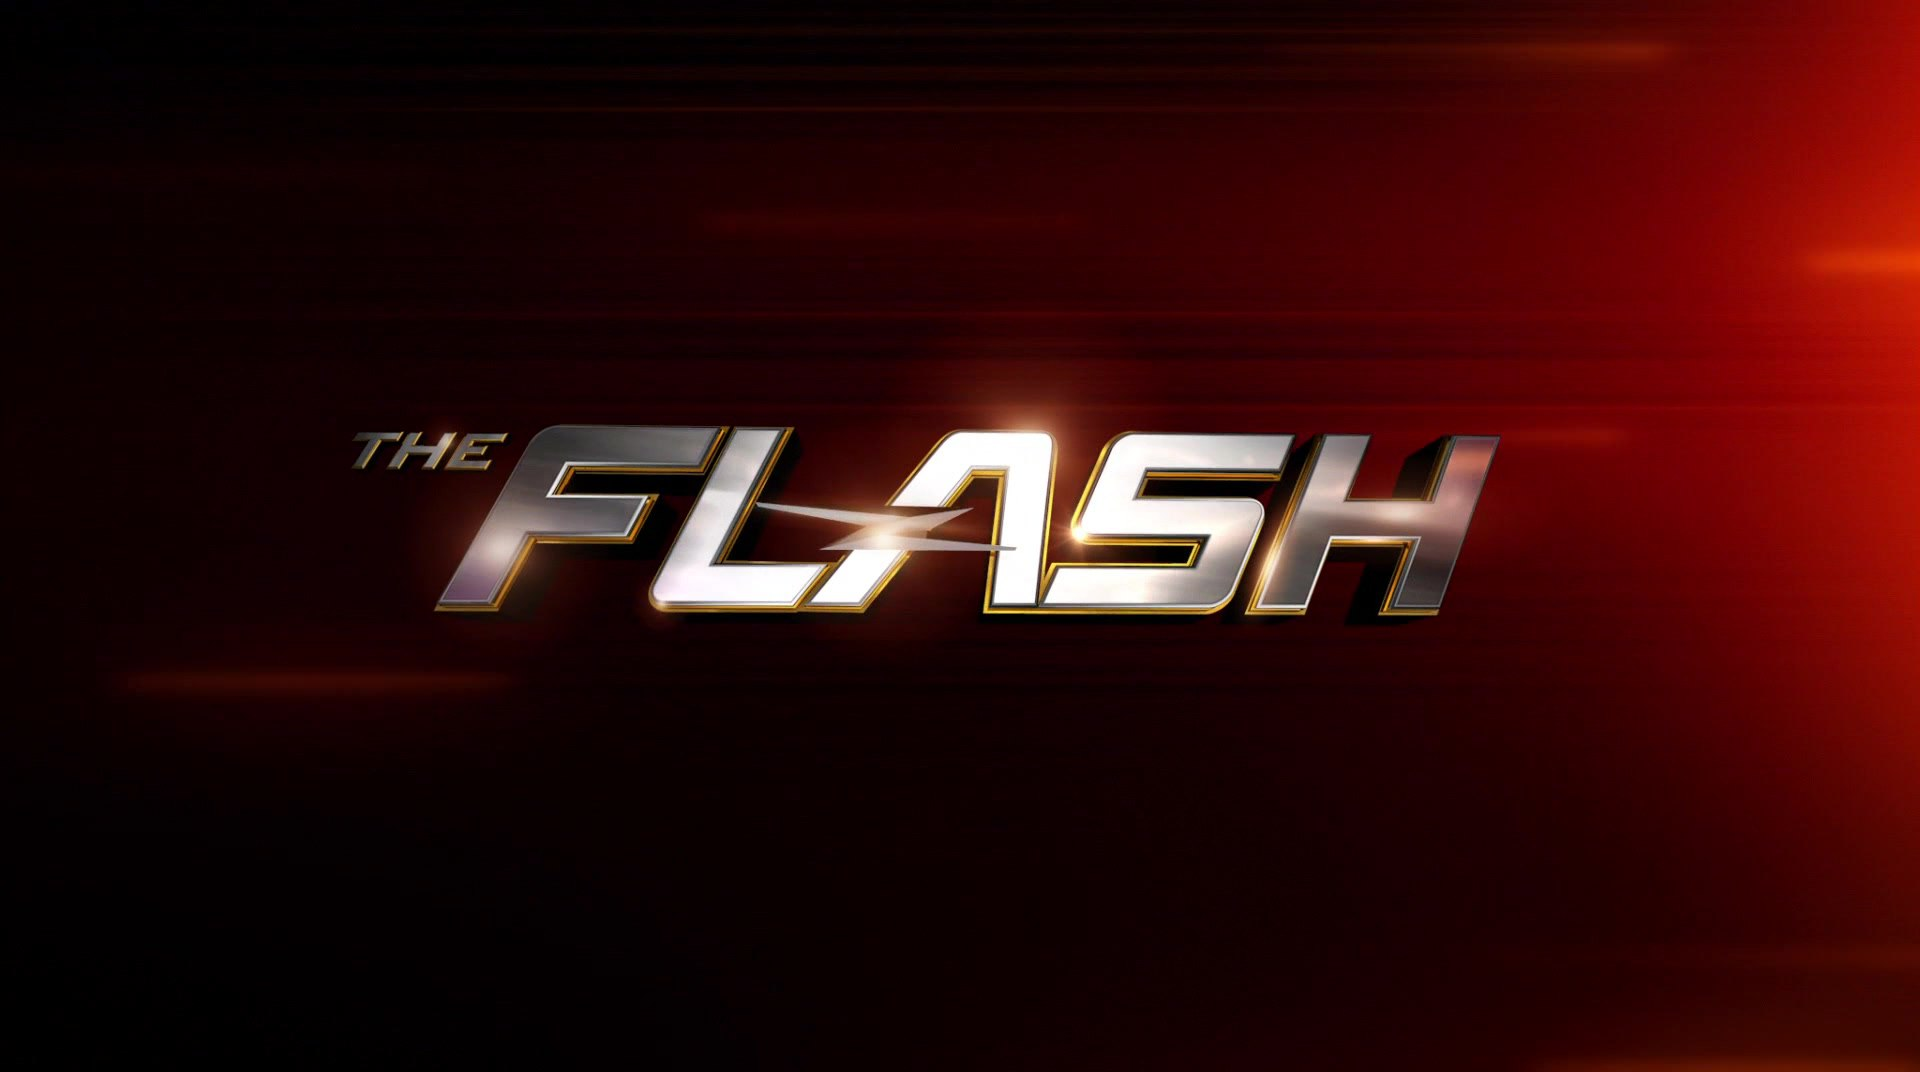 The Flash (2014 TV Series) Episode: Elongated Journey into Night